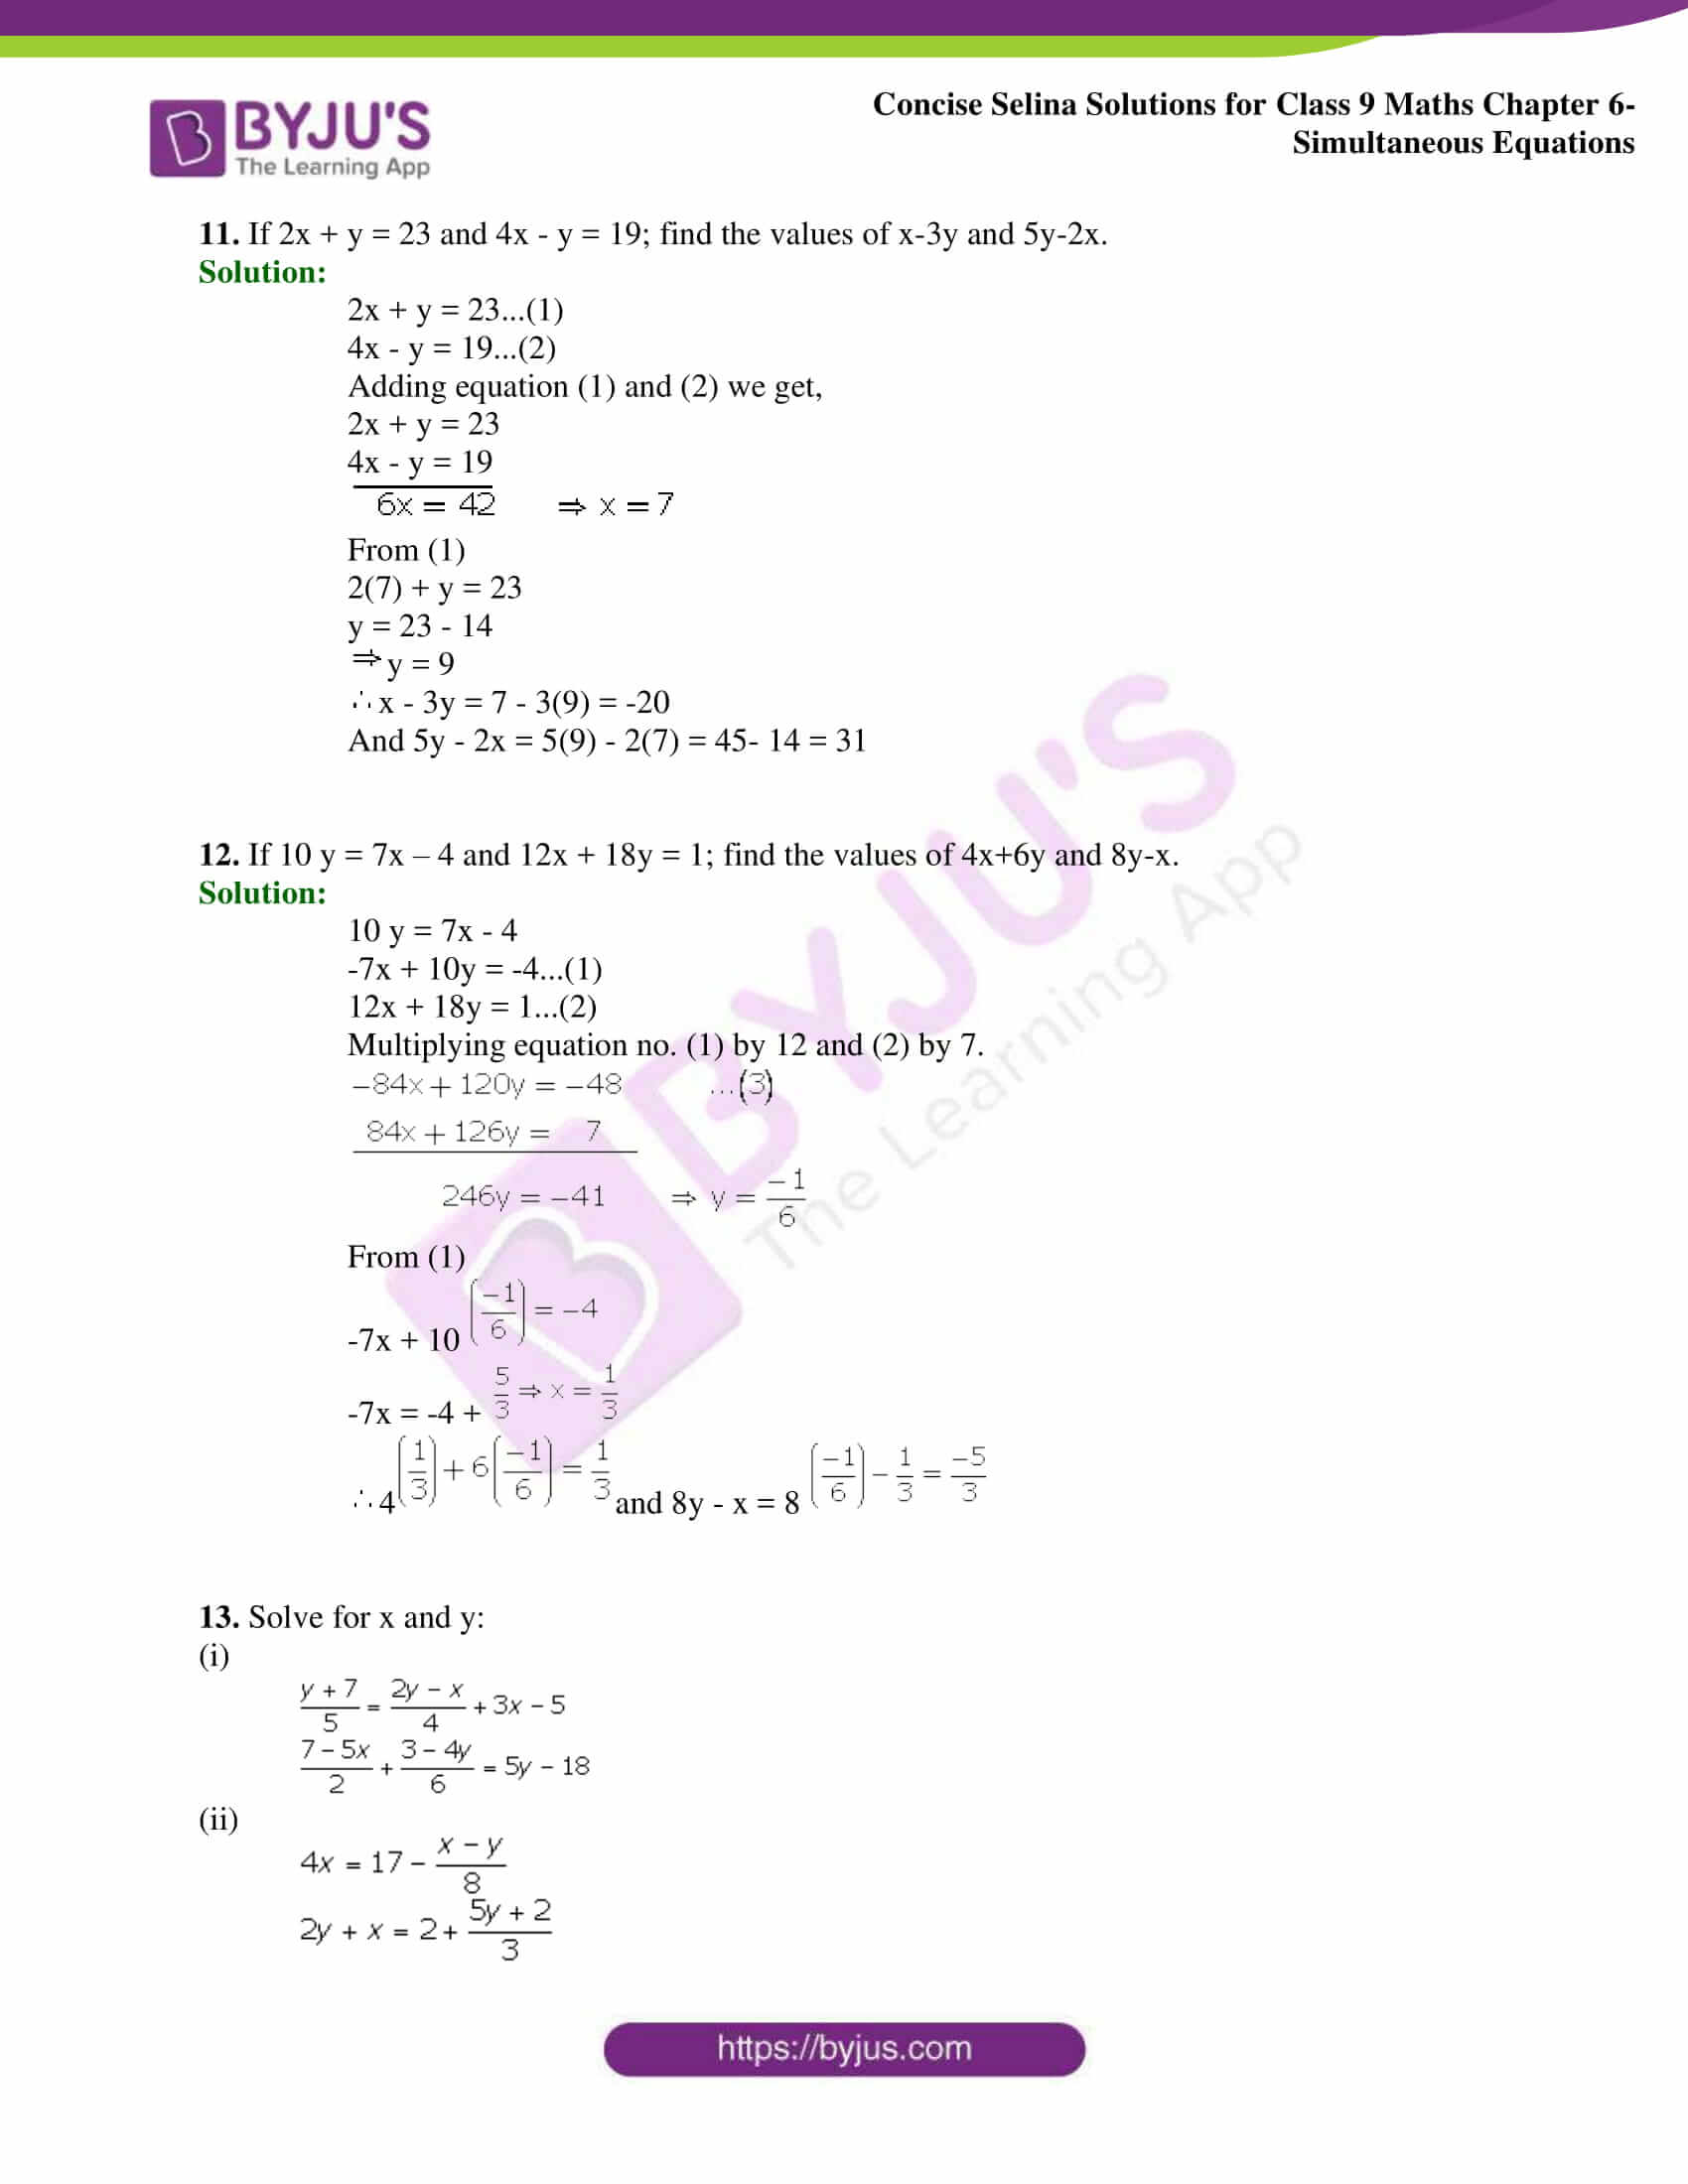 Selina Solutions Class 9 Maths Chapter 6 Simultaneous Equations part 15